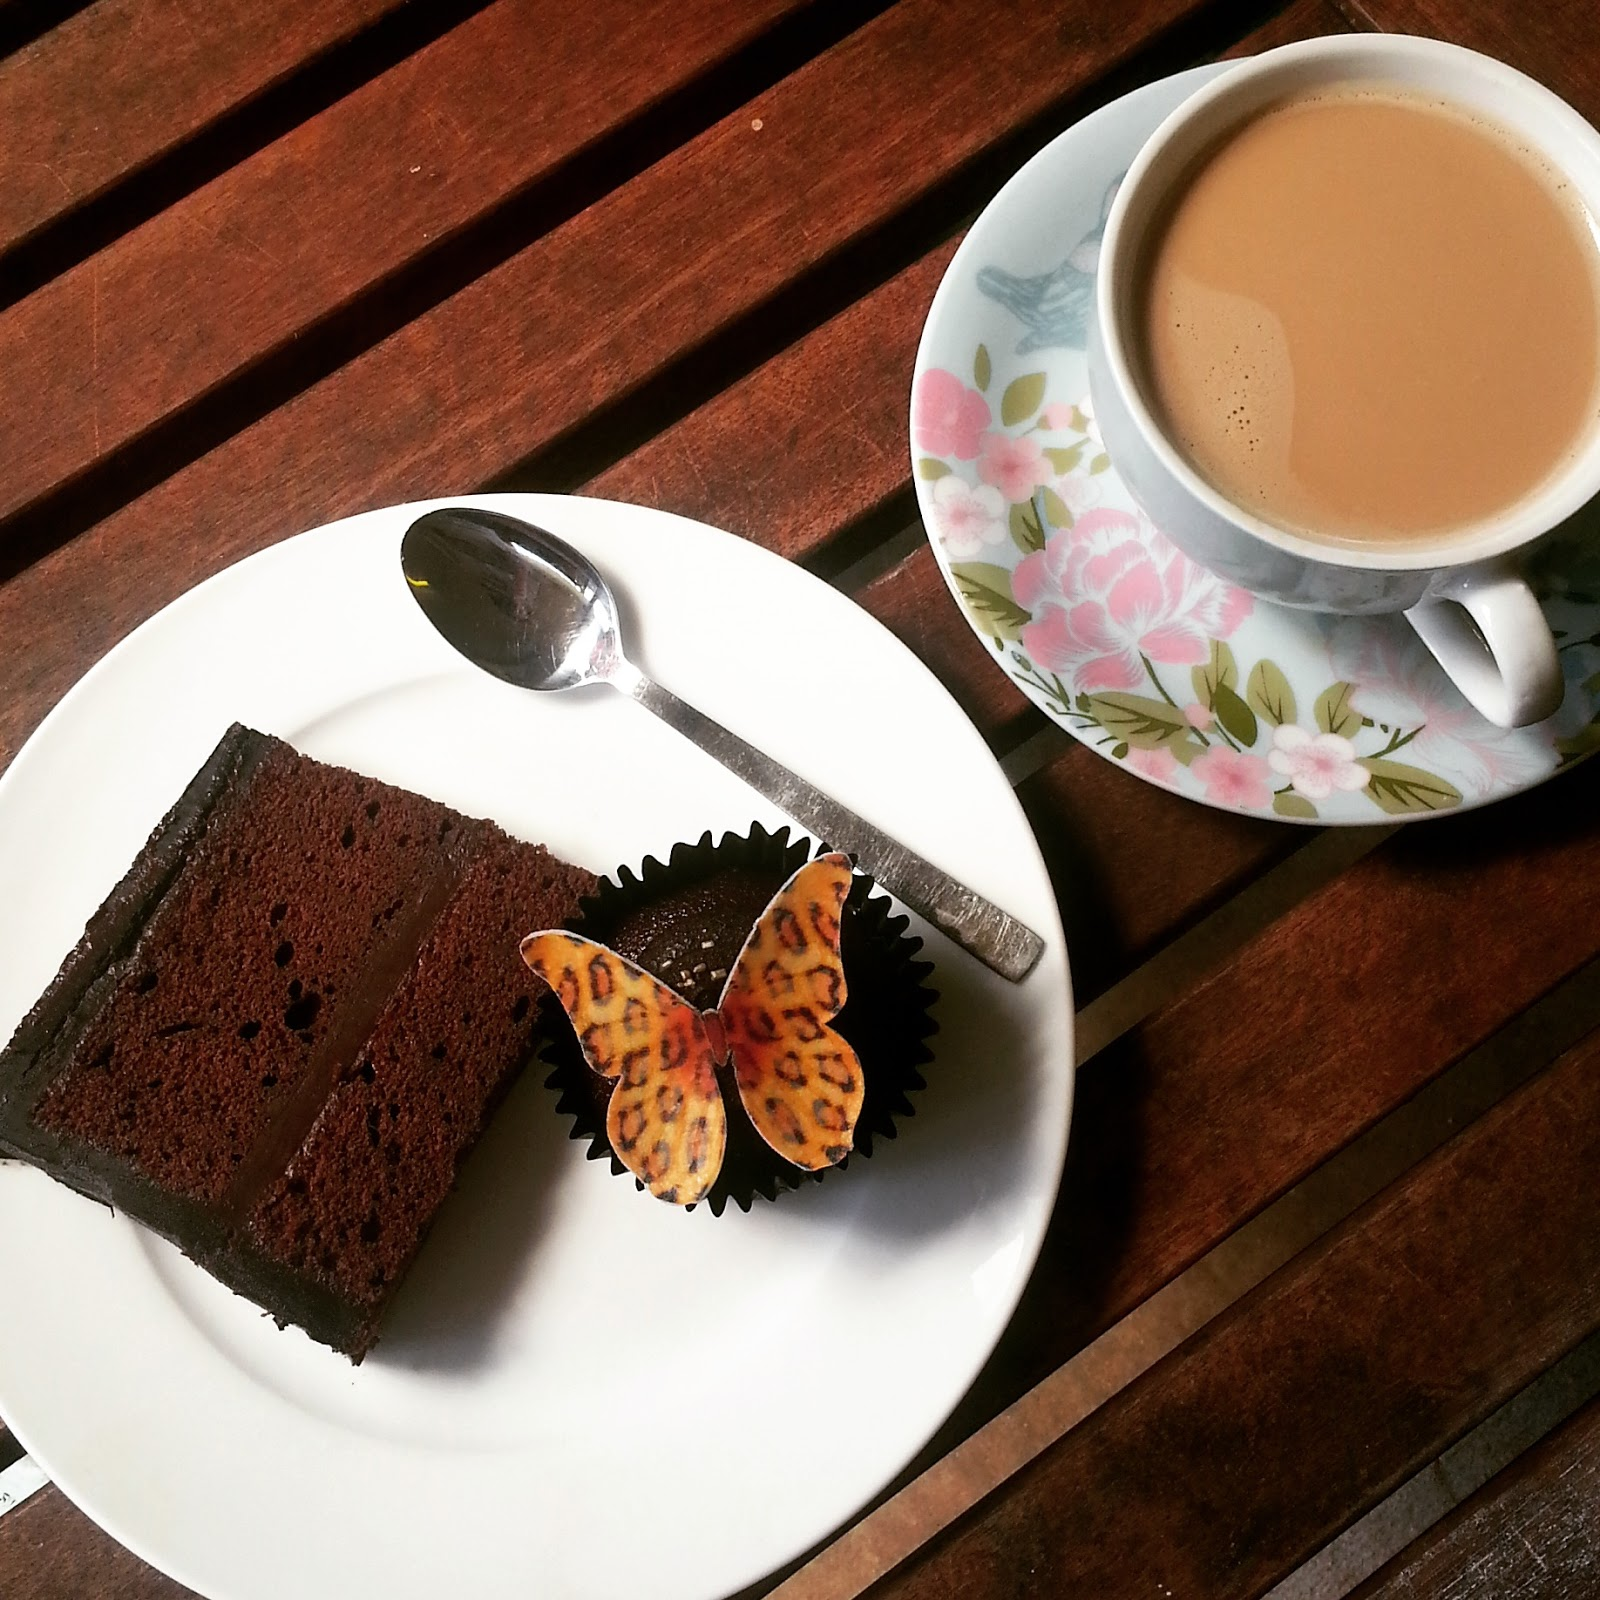 A slice of chocolate cakes, edible leopard print butterfly cupcake and a cup of nespresso coffee.